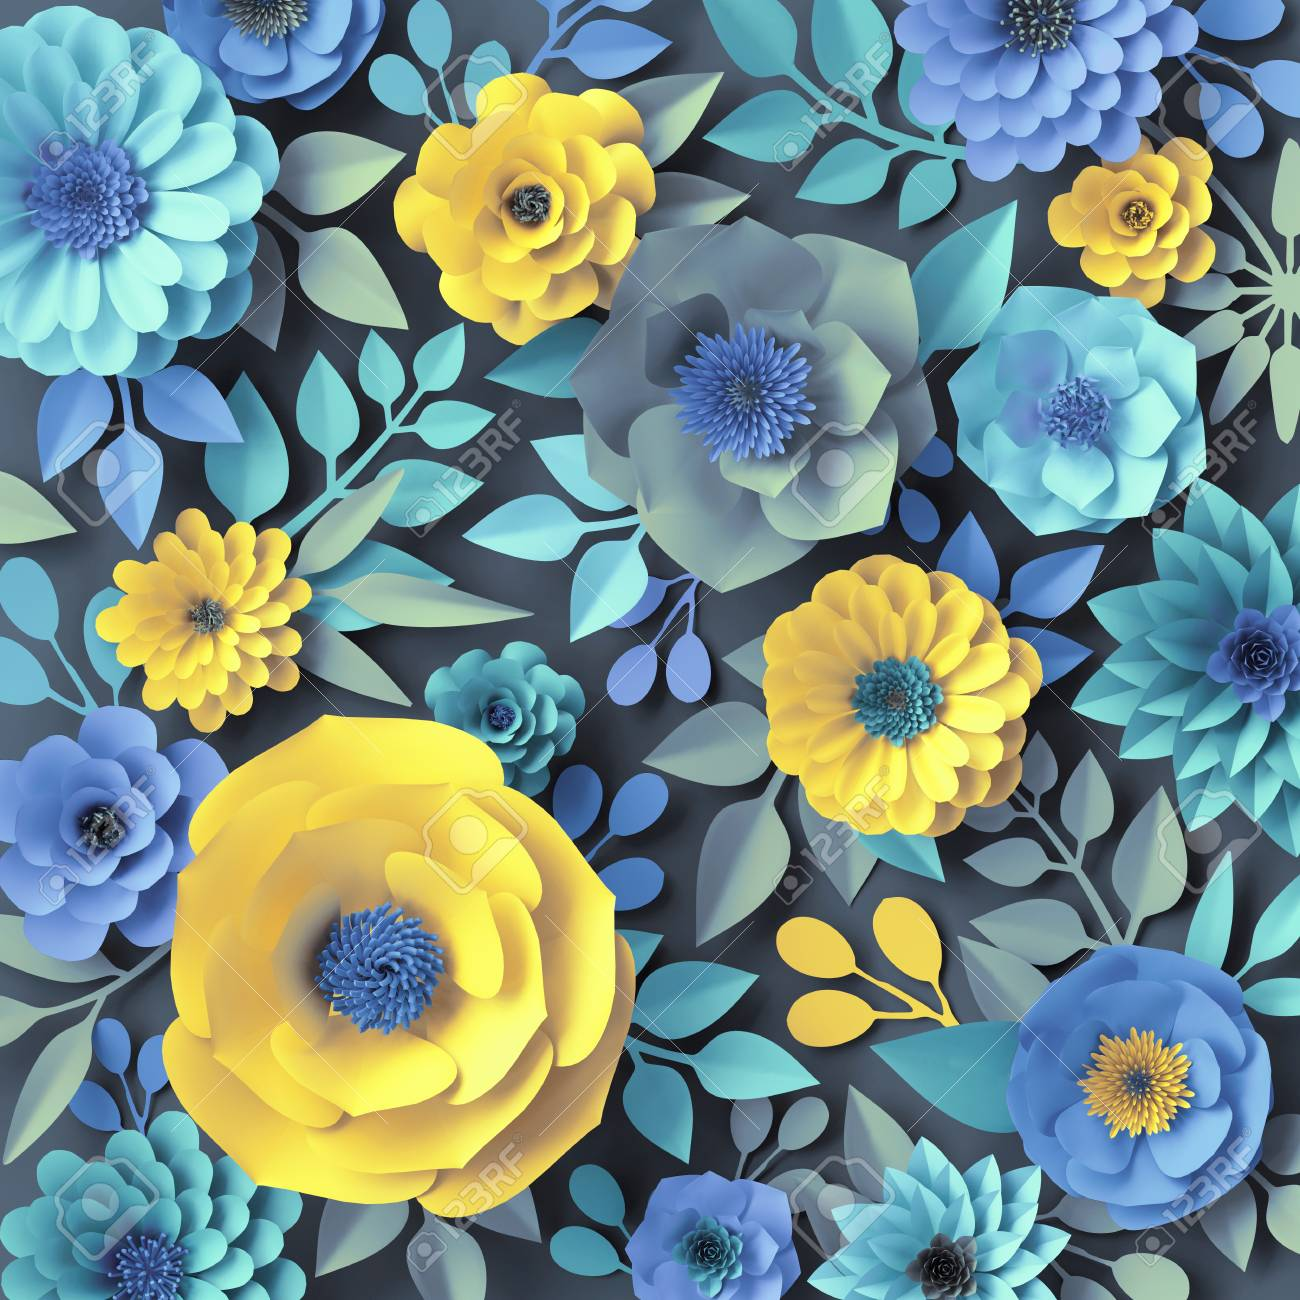 3d Render Blue Yellow Paper Flowers Botanical Background Floral